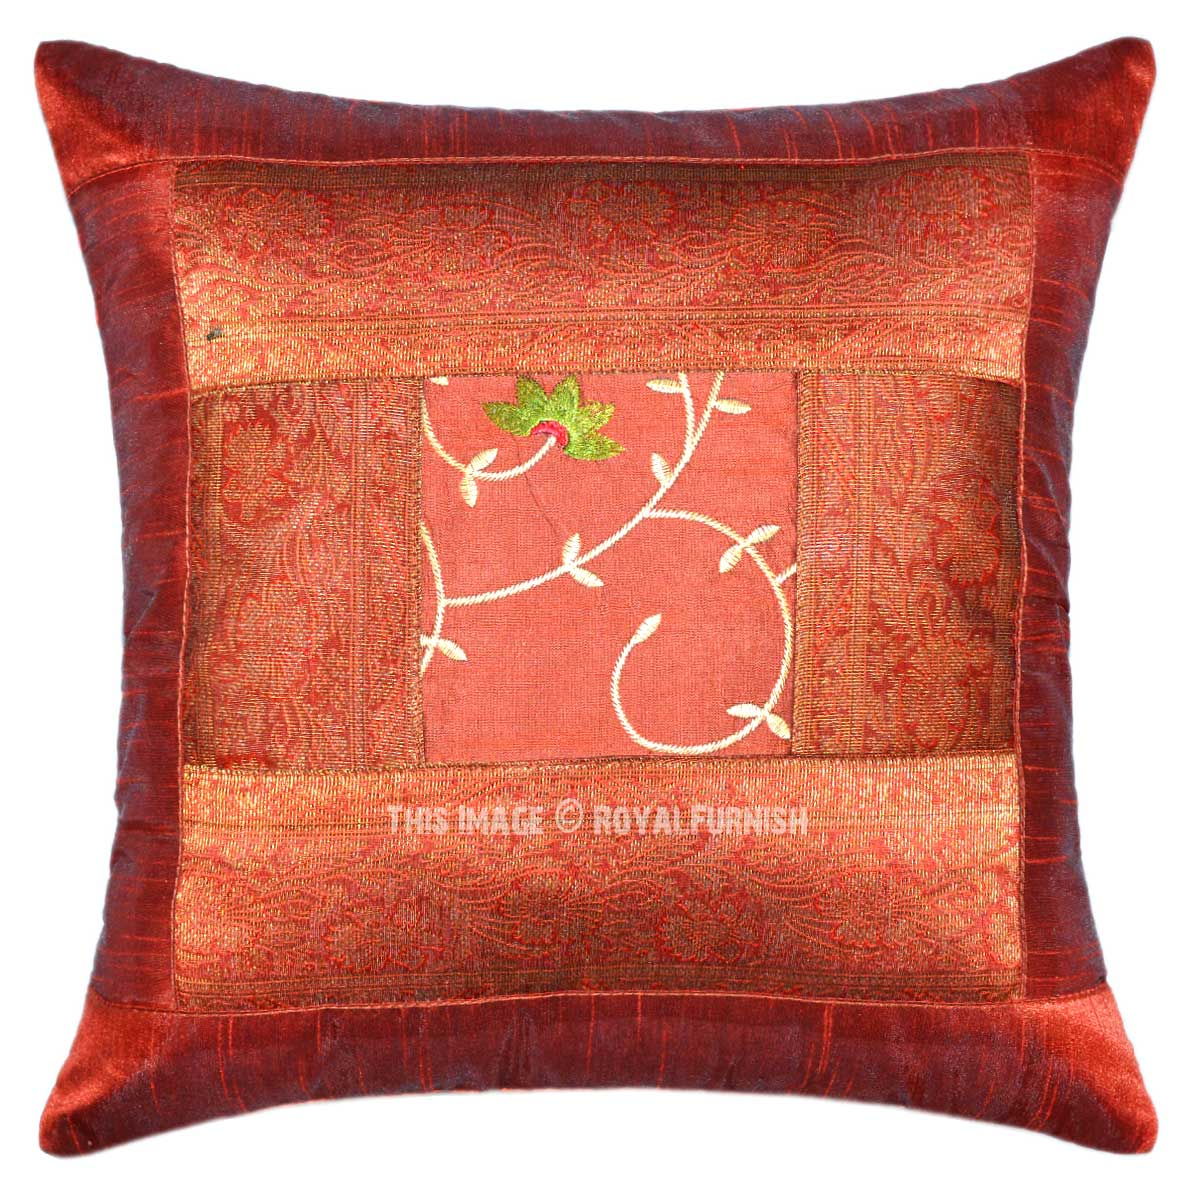 Unique Decorative Throw Pillows : Brown Unique Handcrafted Floral Silk Embroidered Decorative Pillow Cover 16X16 - RoyalFurnish.com